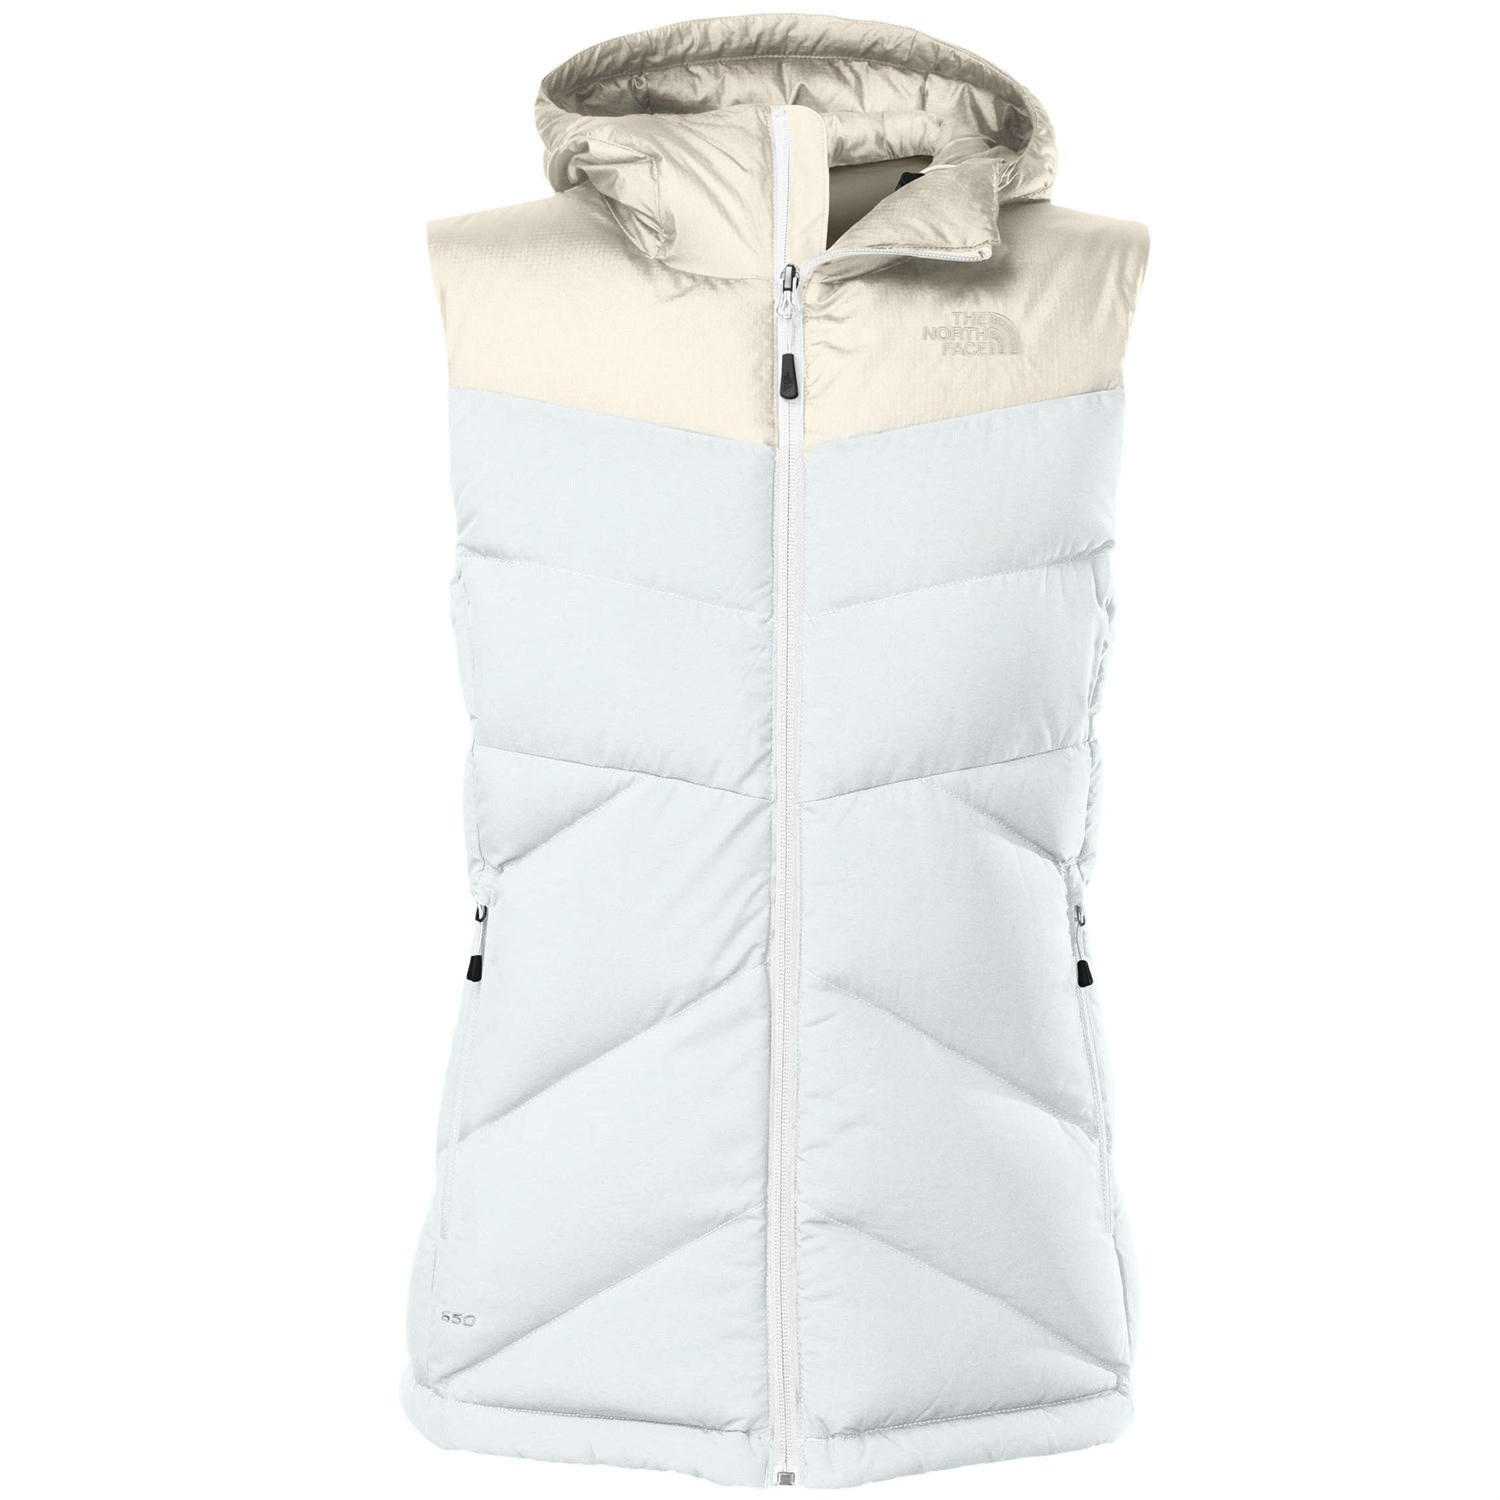 8f6c17c69 The North Face Kailash Hooded Vest - Women's | evo